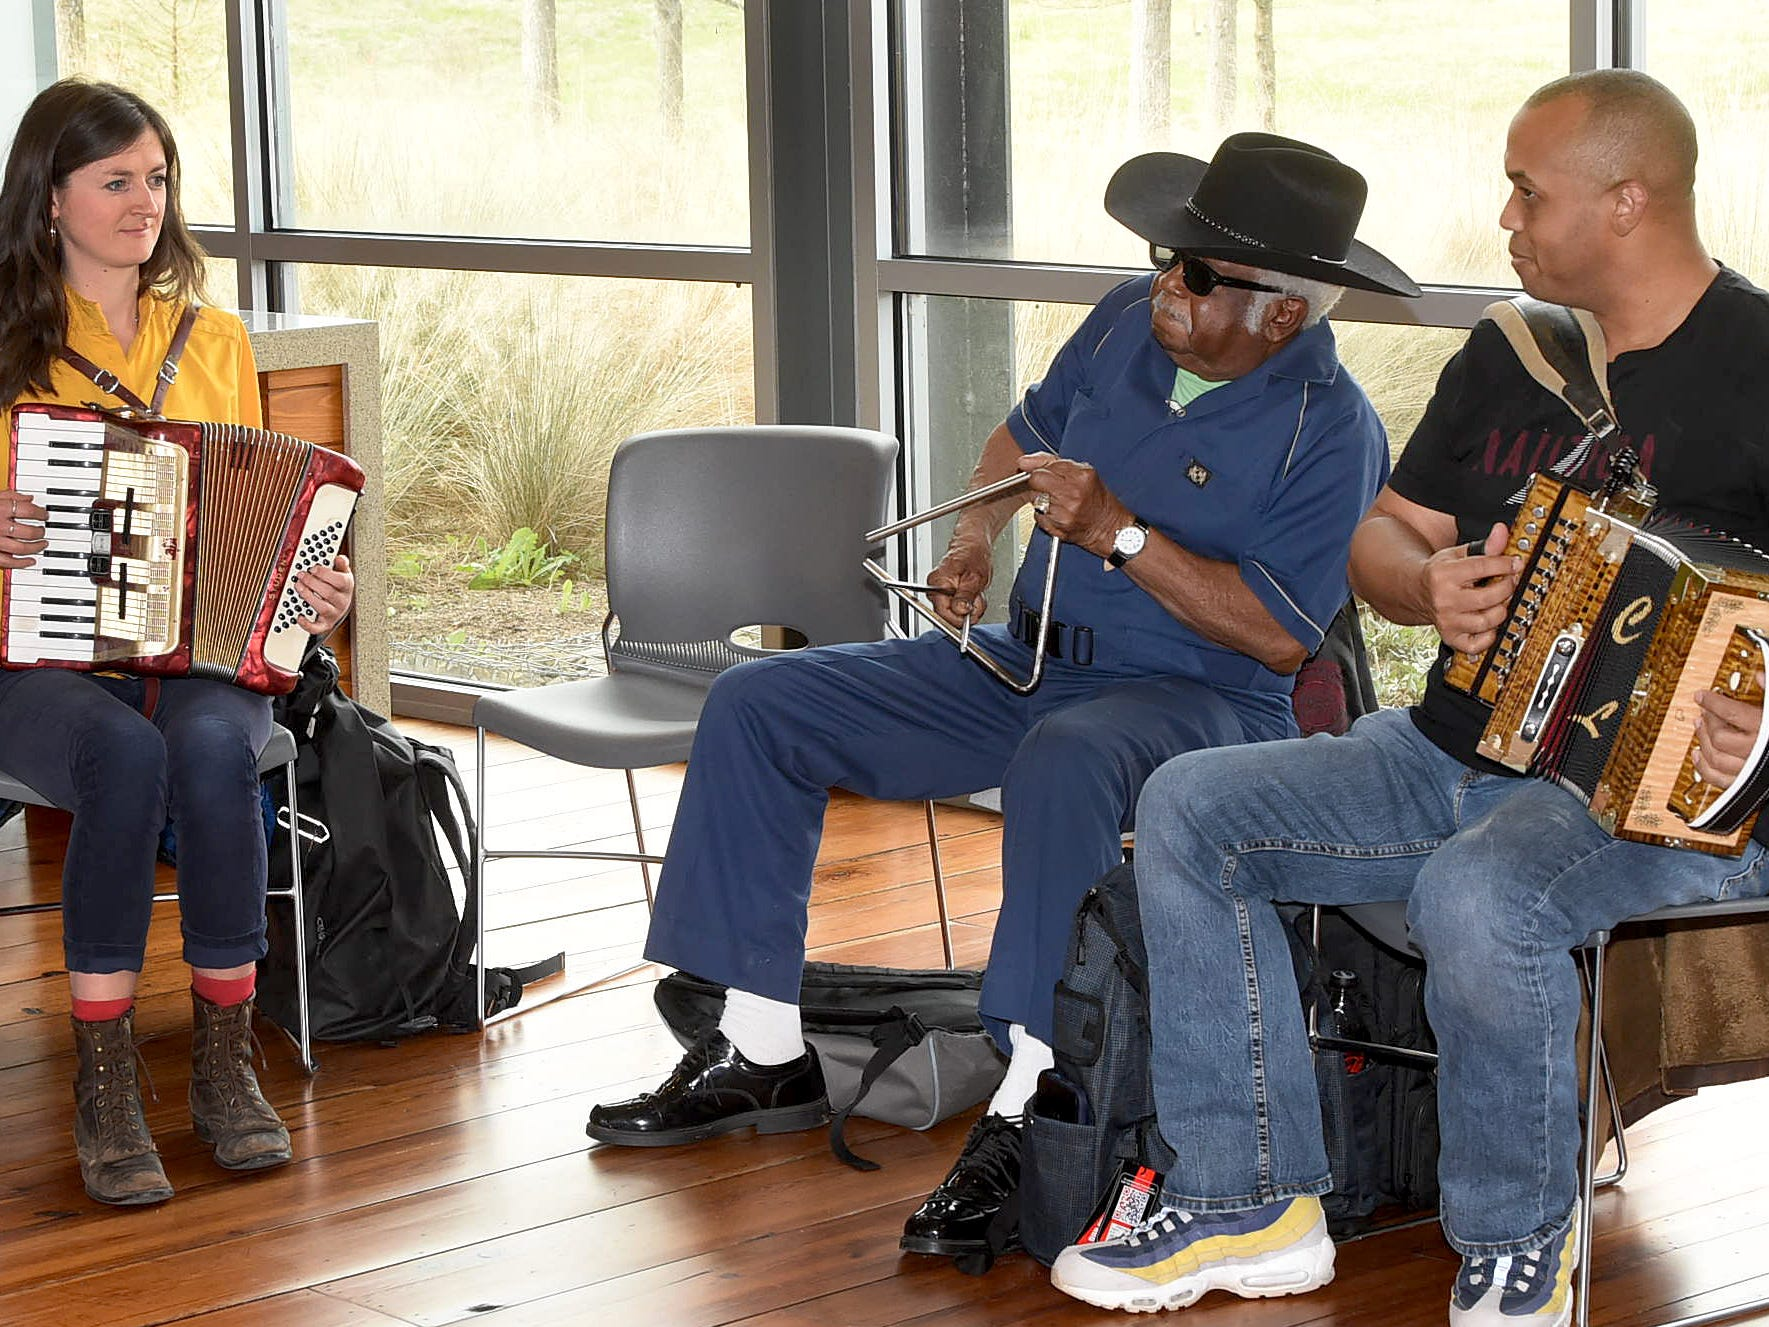 Saturday jam session at the St. Landry Parish Visitors Center